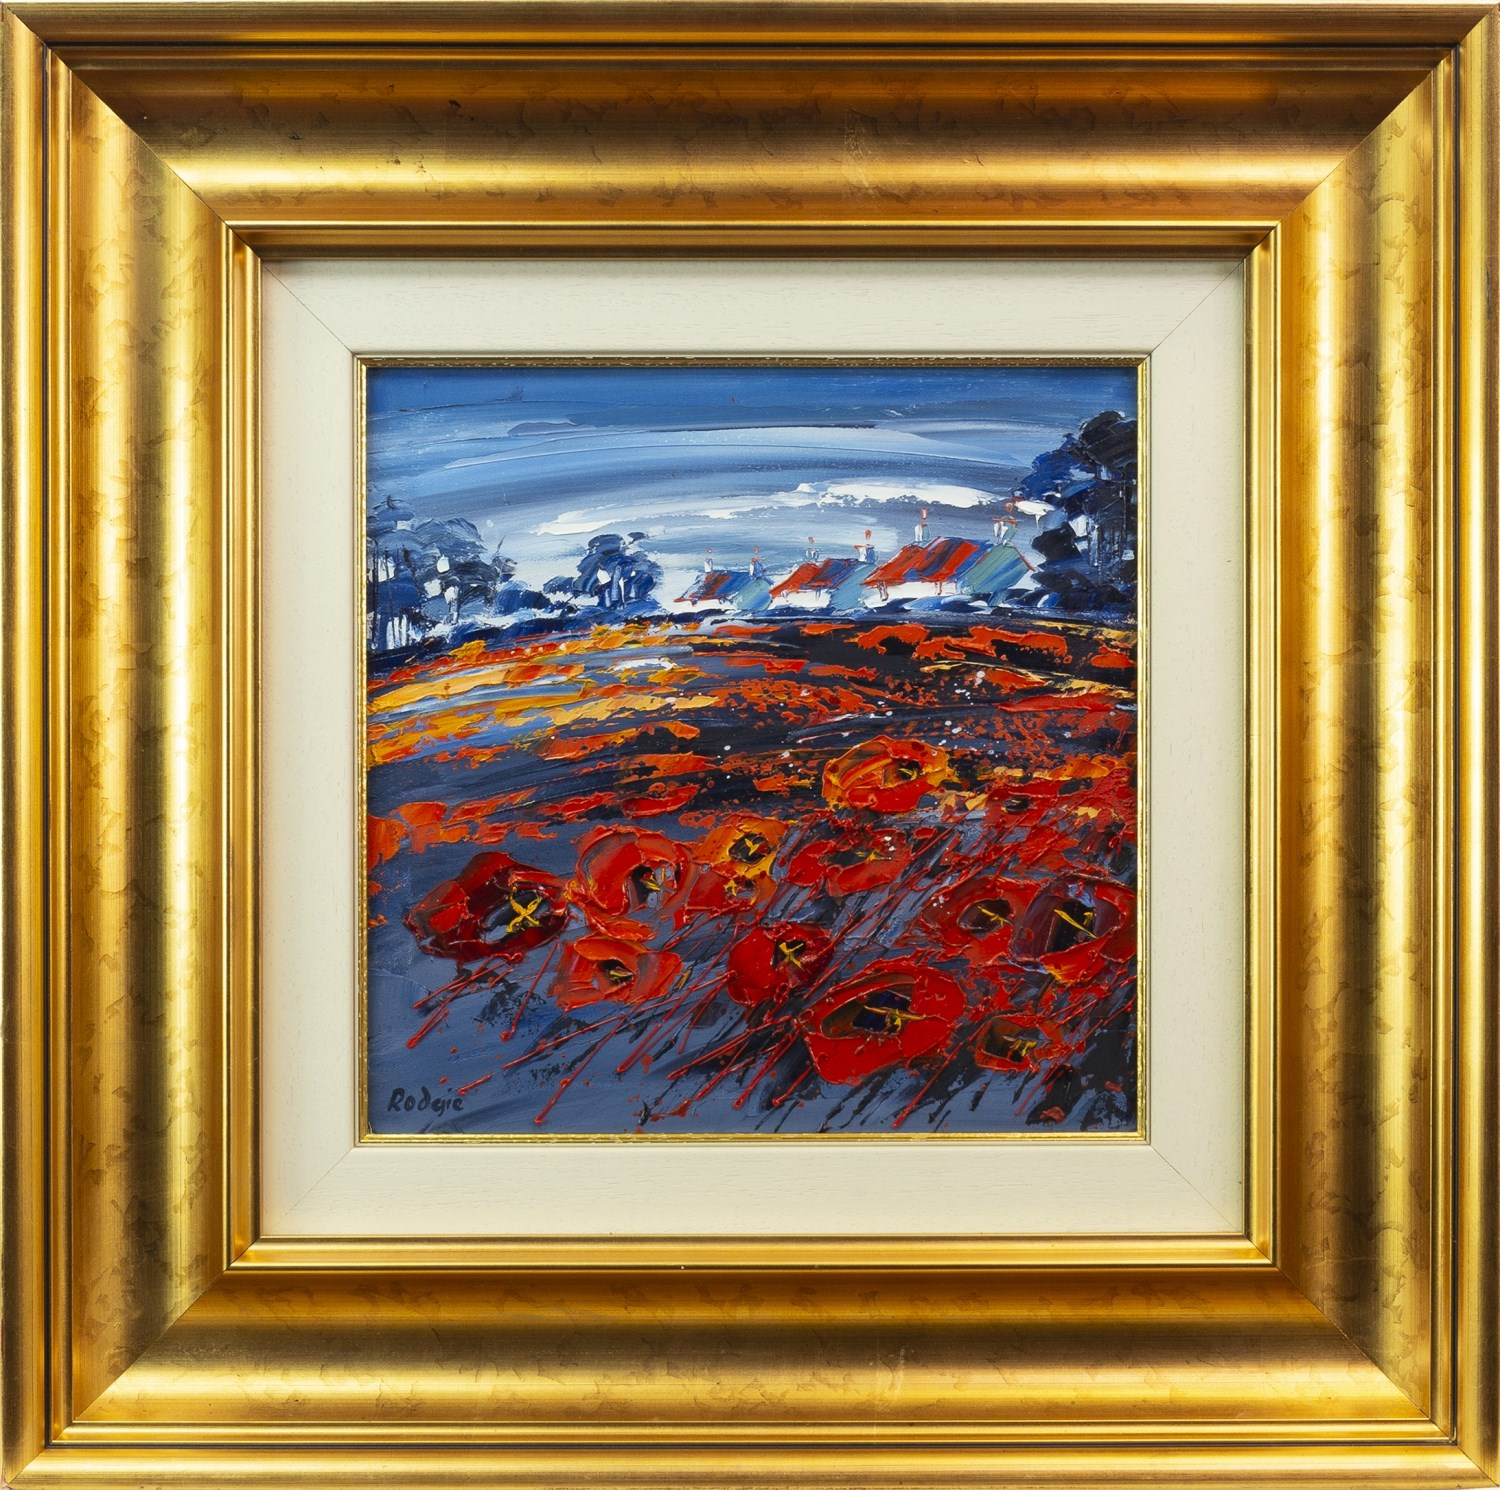 Lot 104 - SUMMER POPPIES, ABERLADY, AN OIL ON CANVAS BY LYNN RODGIE